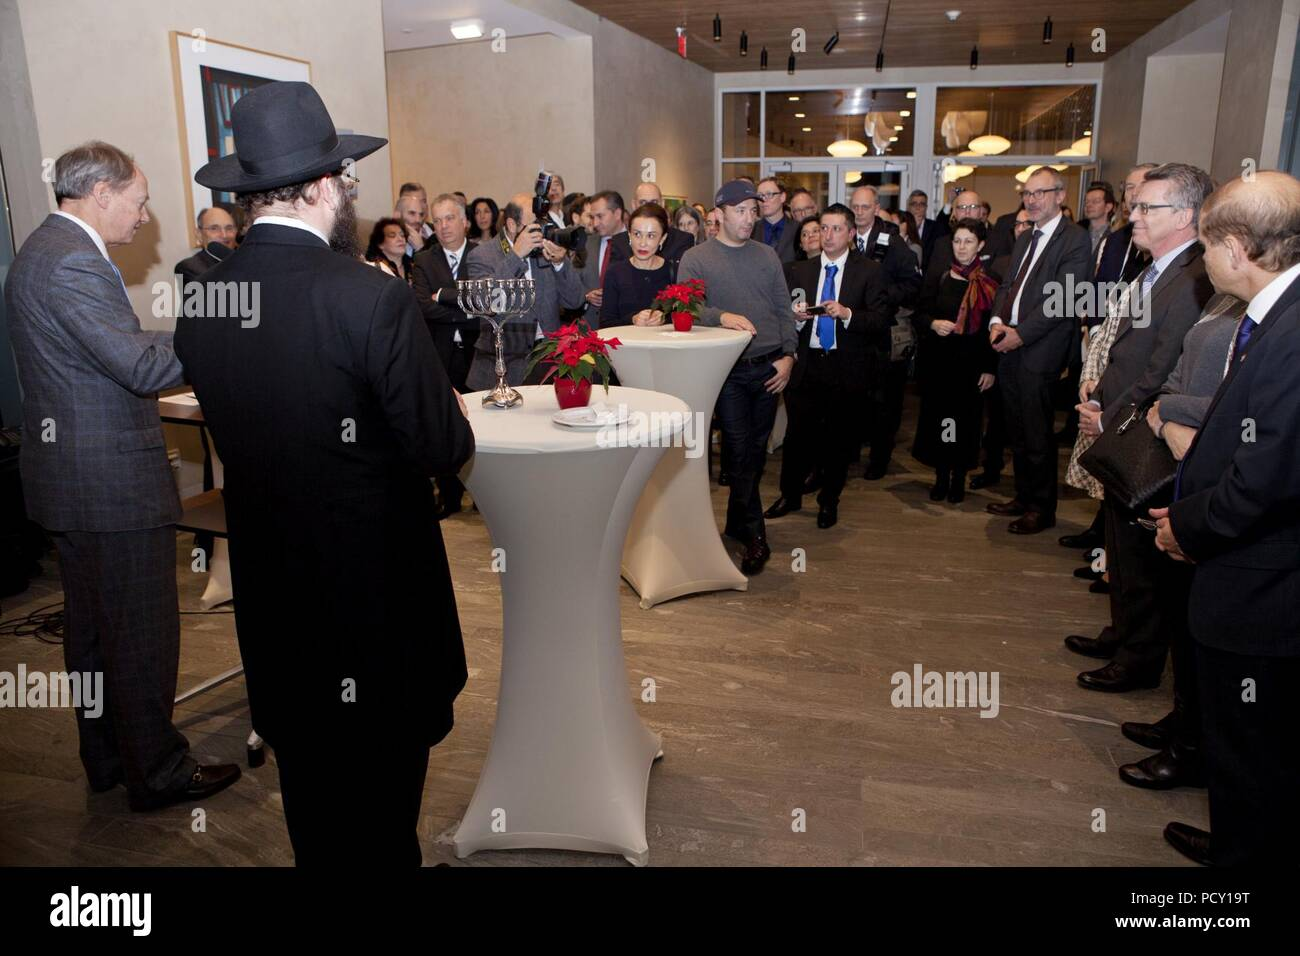 Ambassador Emerson speaking at the Chanukkah reception in the Embassy - Stock Image